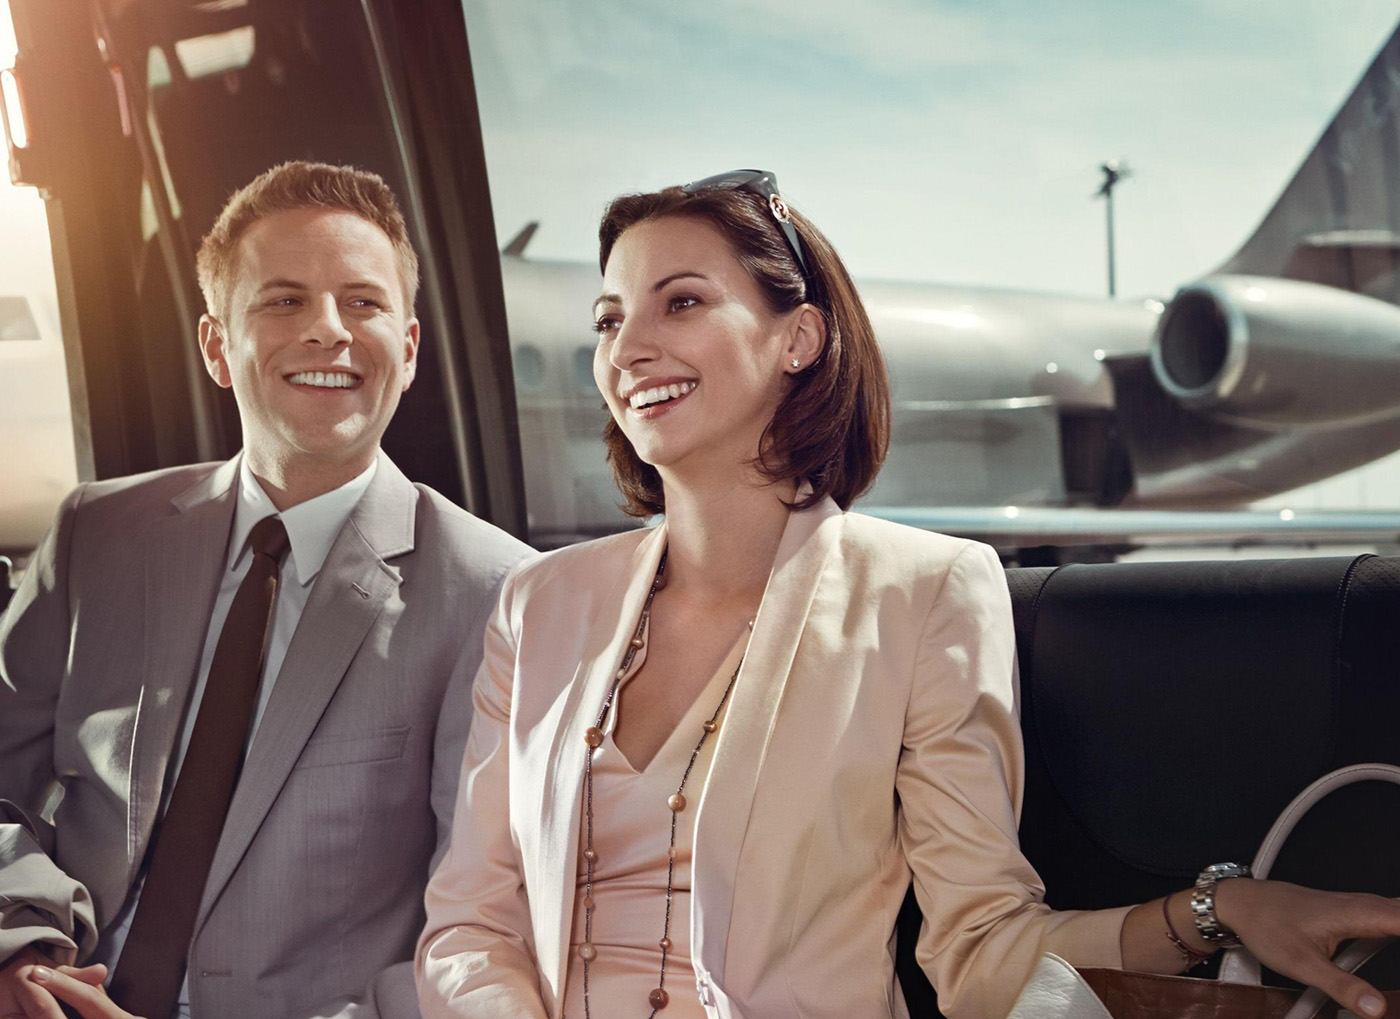 Sabiha gken airport meet greet service istanbul meet greet istanbul meet greet service can be met at sabiha gken airport with you our guests receive customized assistance service from our staff m4hsunfo